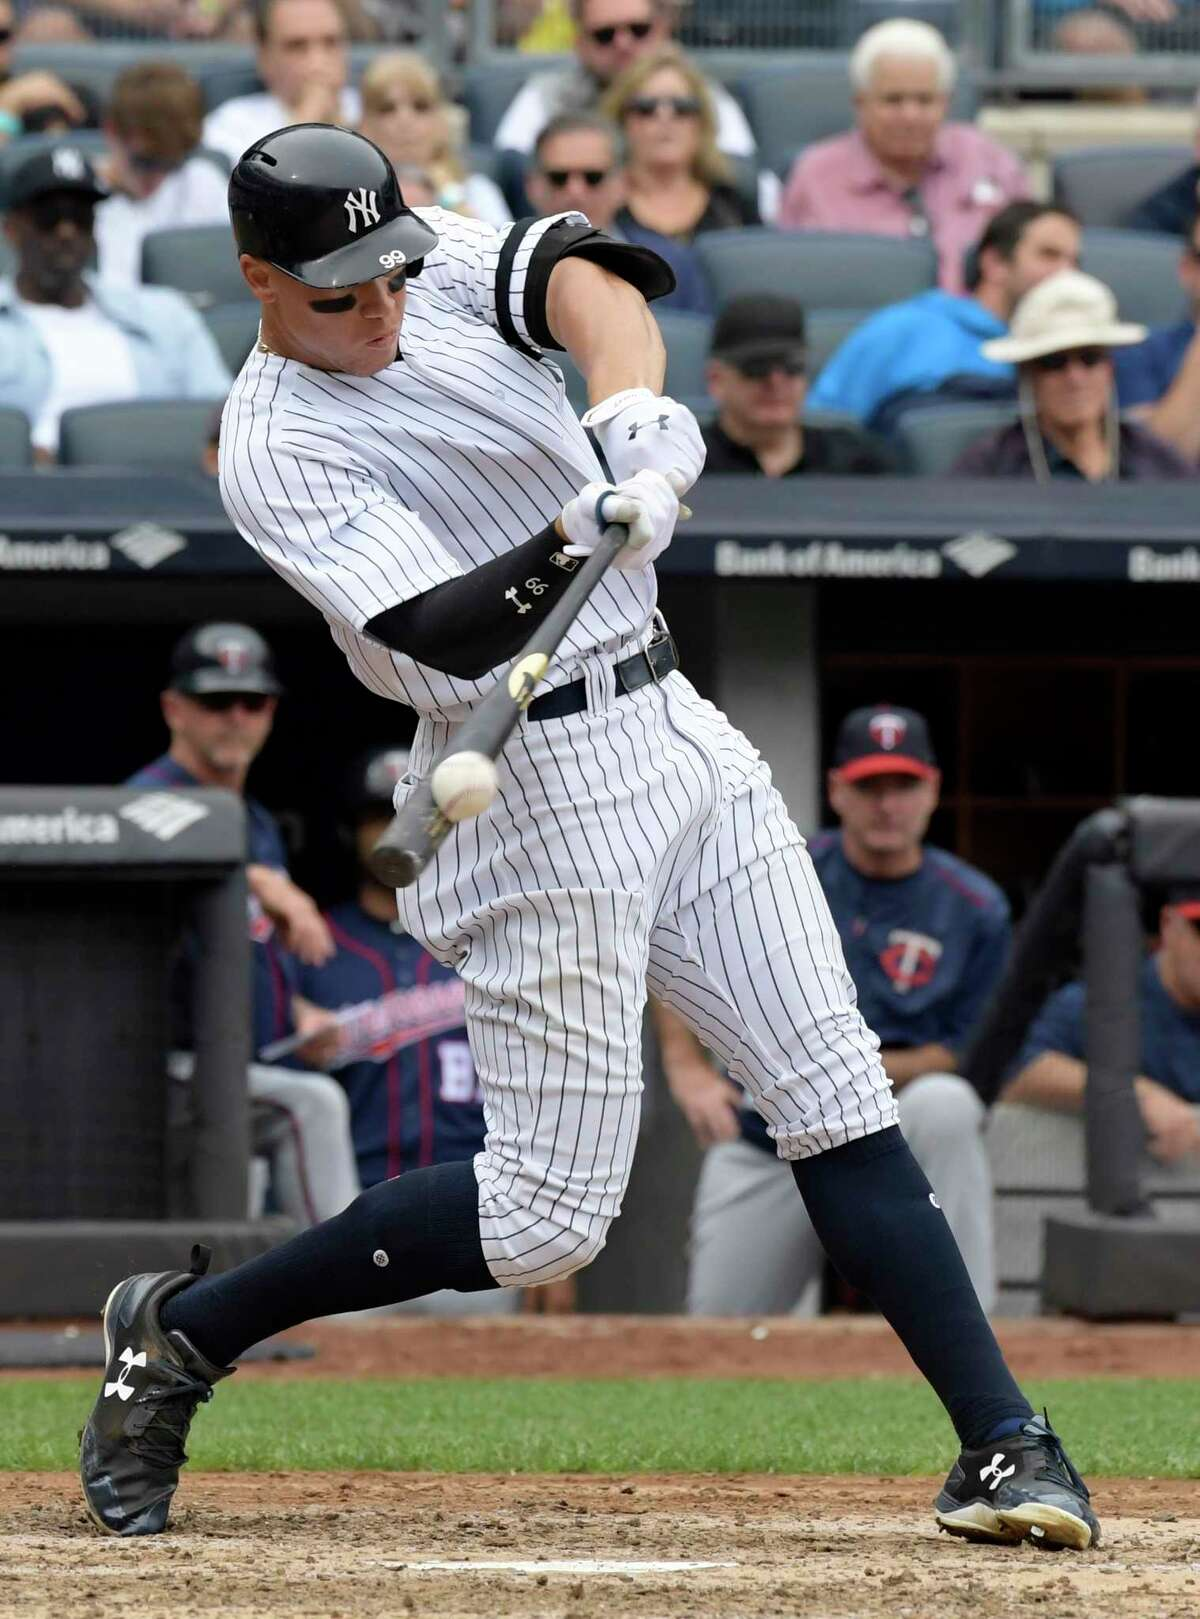 New York Yankees' Aaron Judge hits a two-run home run during the third inning of a baseball game against the Minnesota Twins Wednesday, Sept. 20, 2017, at Yankee Stadium in New York. (AP Photo/Bill Kostroun) ORG XMIT: NYY106